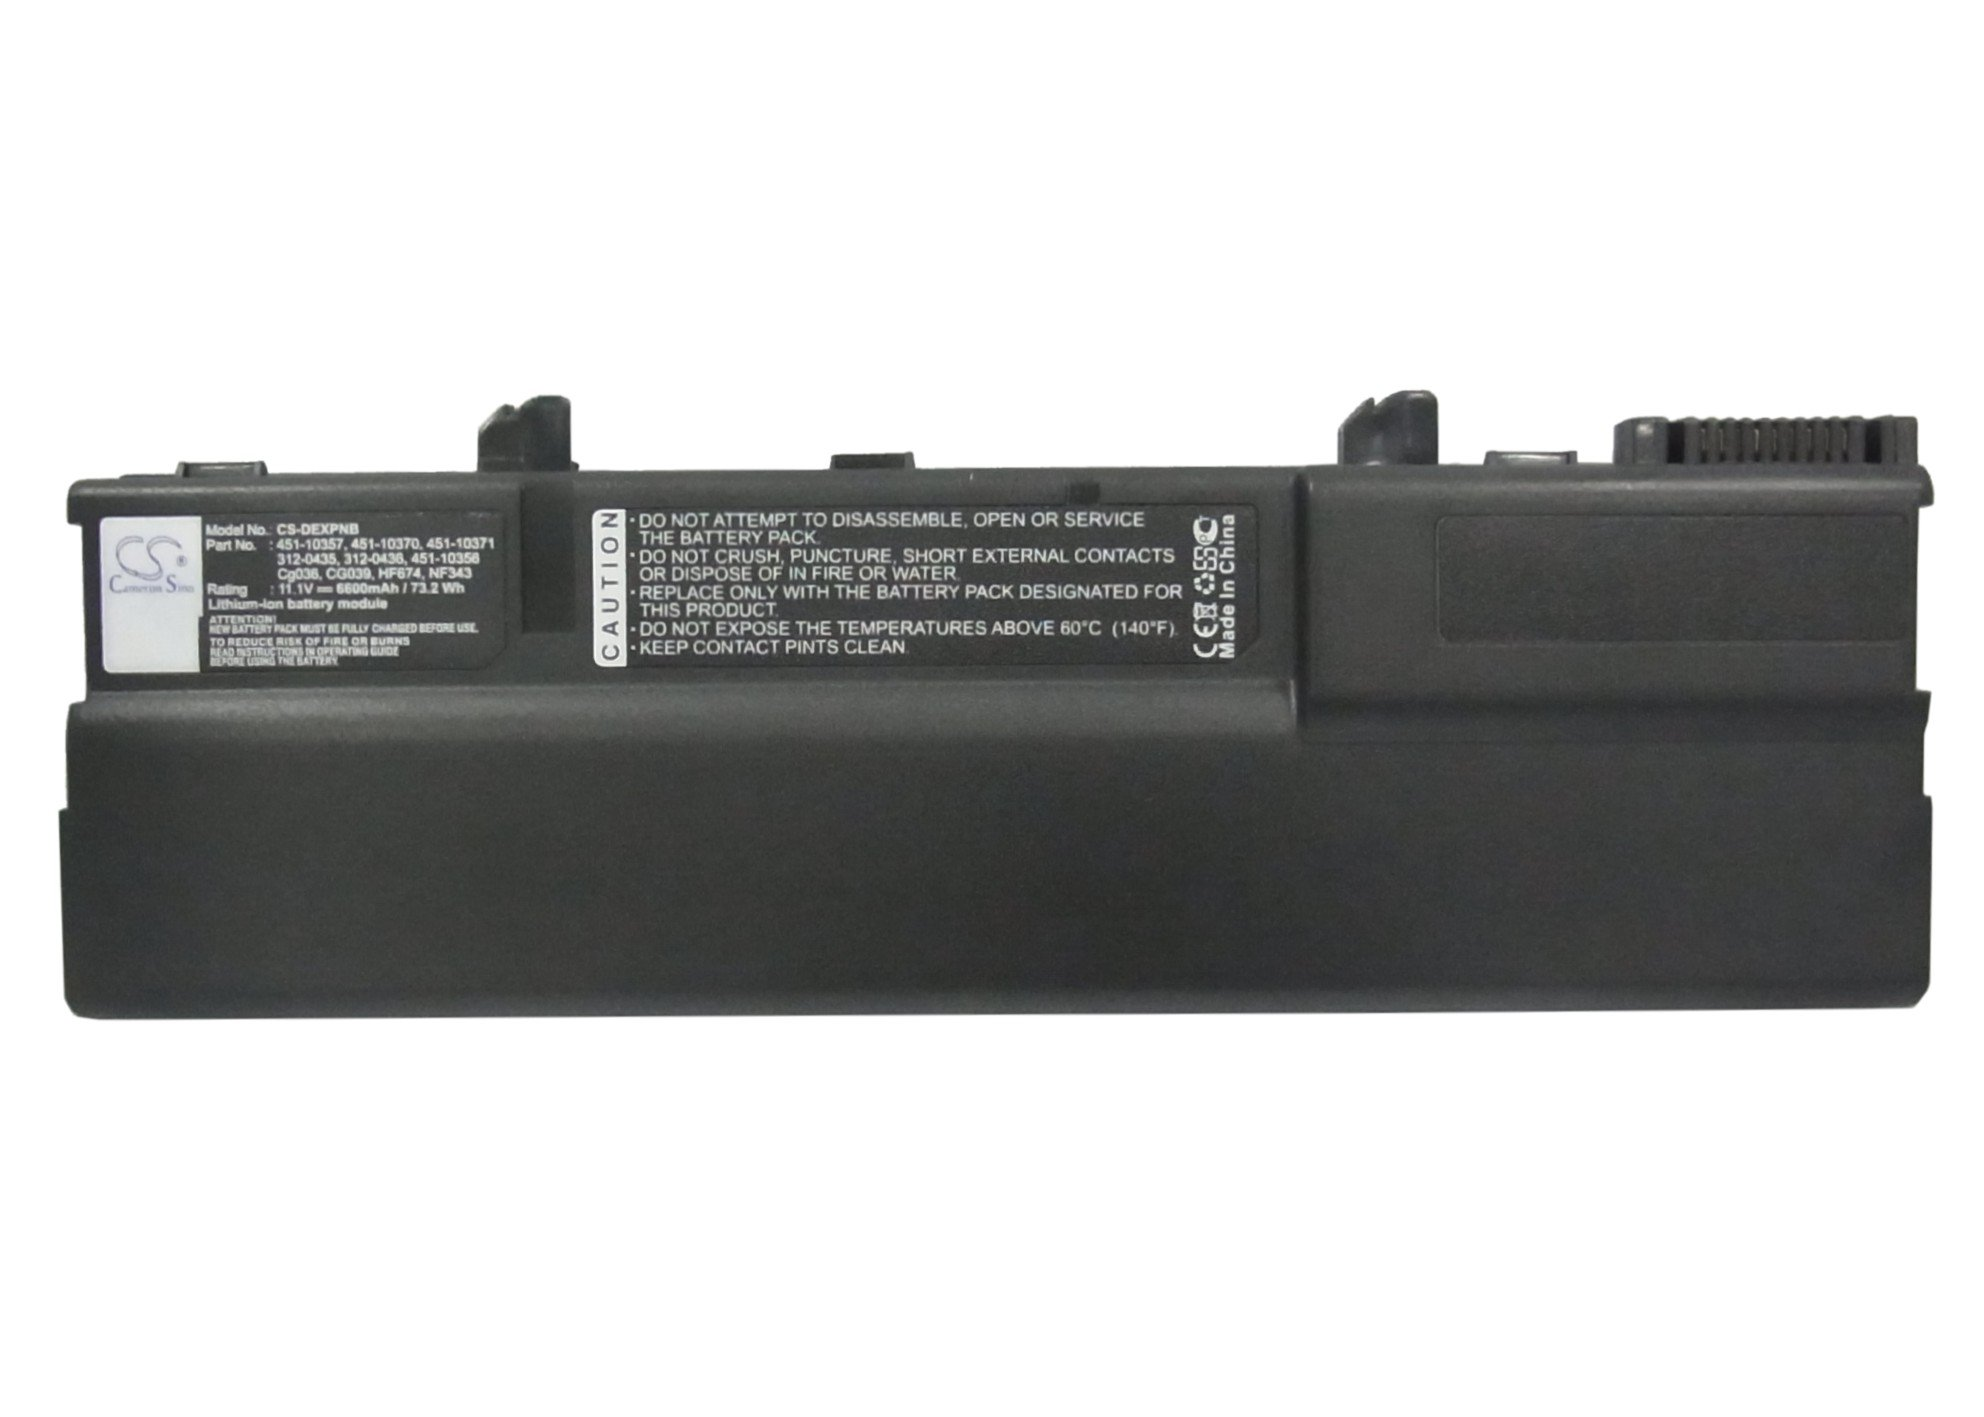 Cameron Sino 6600mAh Li-ion High-Capacity Replacement Batteries for DELL XPS M1210 , fits DELL 312-0435, 312-0436, 451-10356